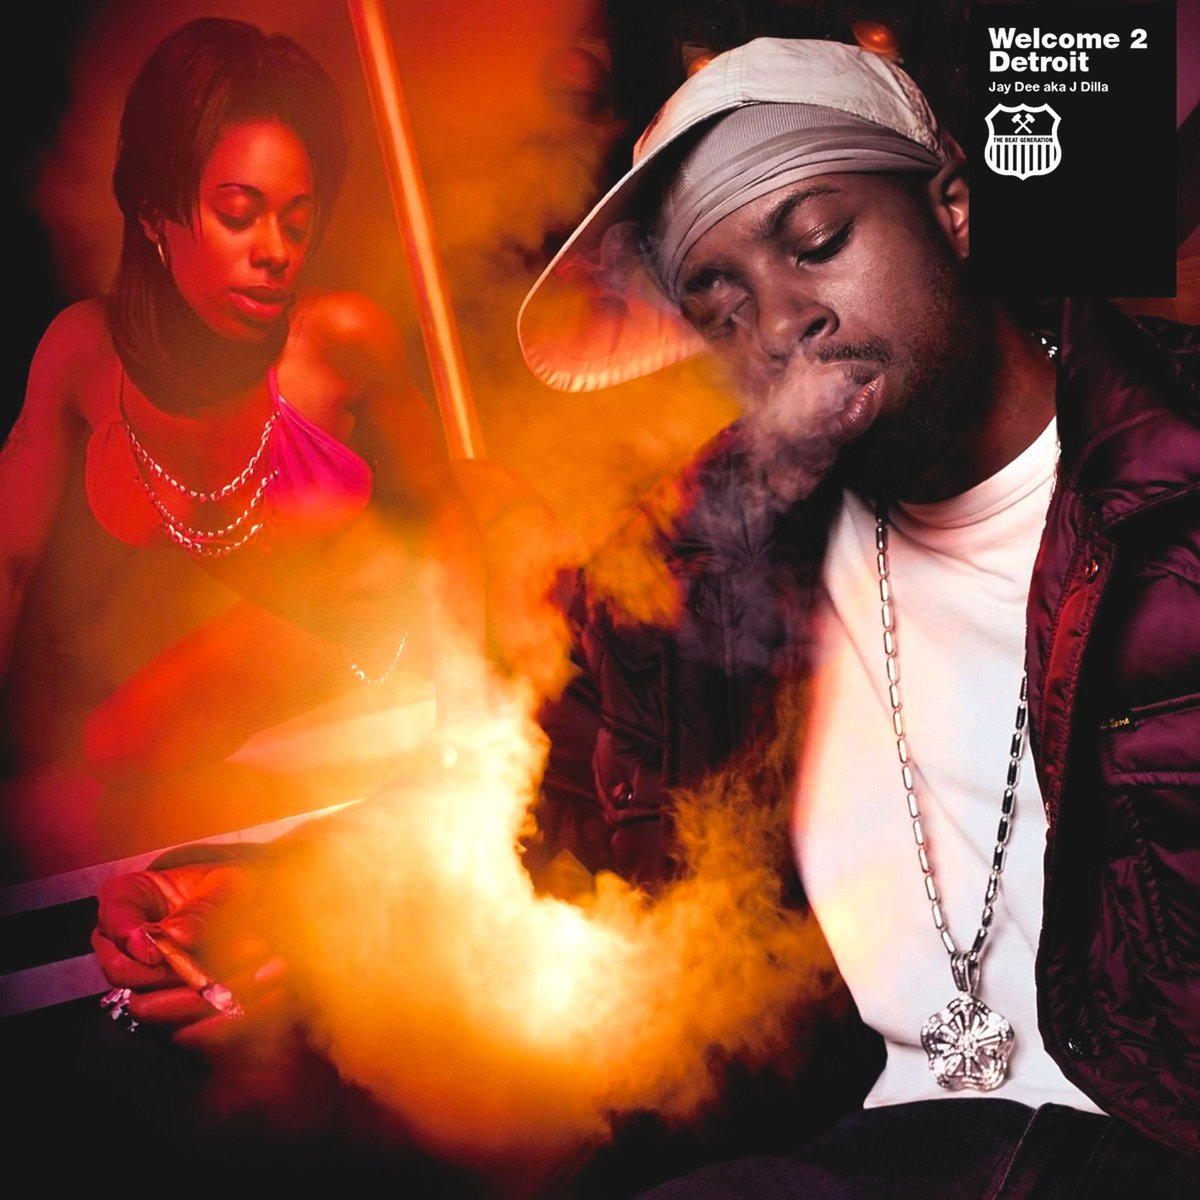 15 Years ago today, Feb. 27, 2001 Jay Dee debuted his 1st solo album 'Welcome 2 Detroit' #JDilla #BeatGeneration